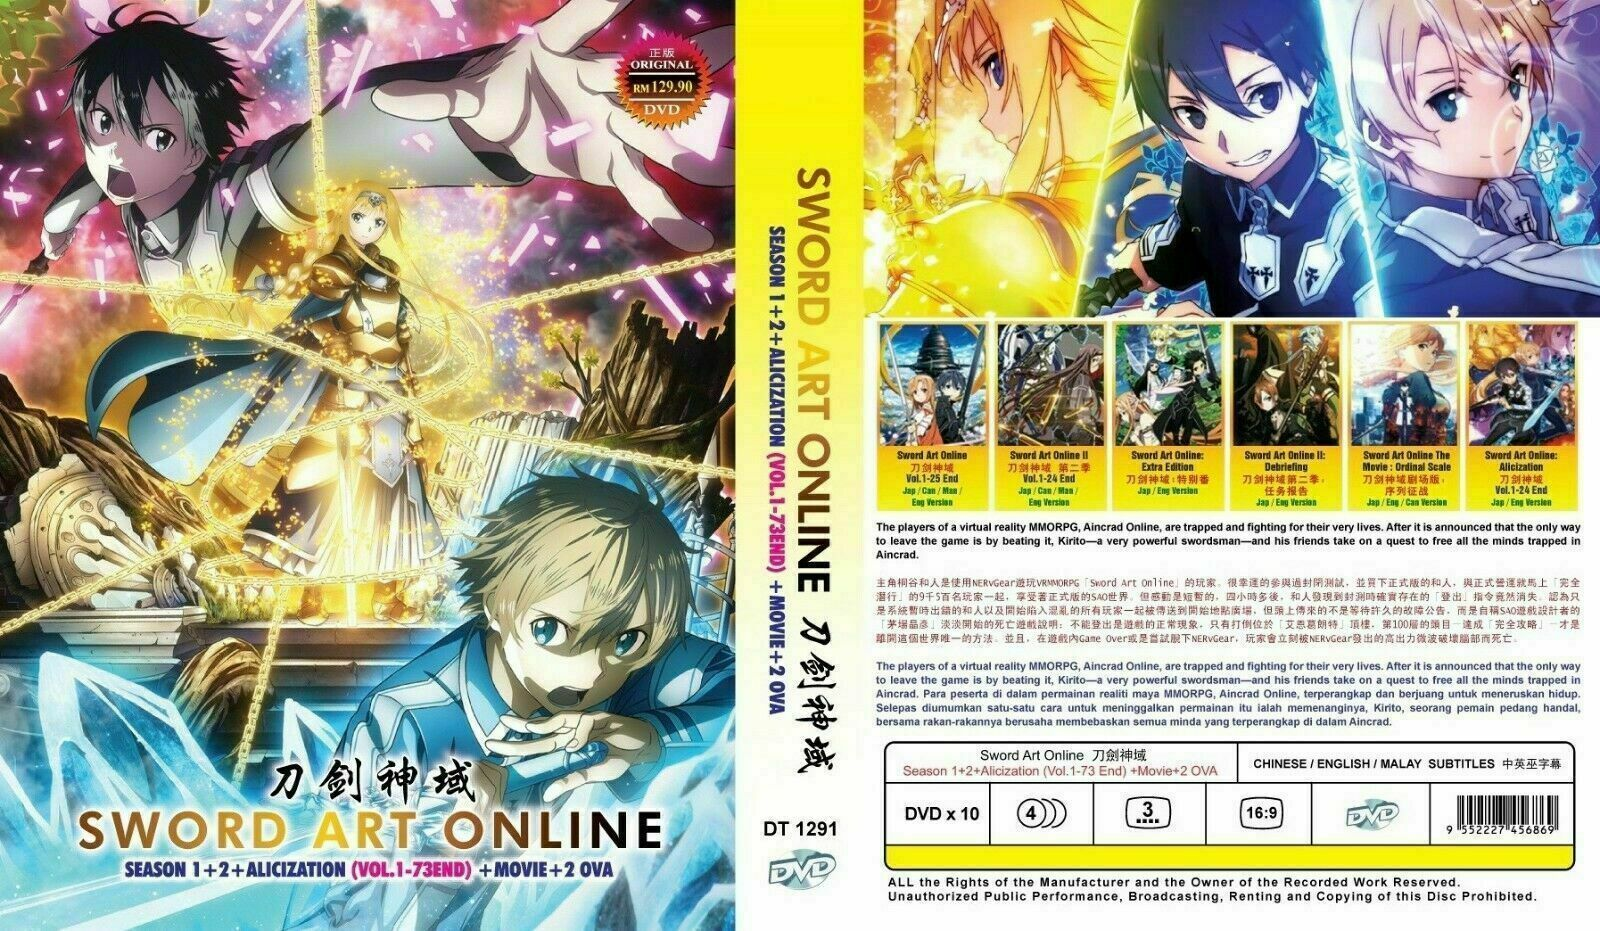 Sword Art Online DVD Complete Season 1+2 +Alizixzation + Movie + 2 OVA US Seller